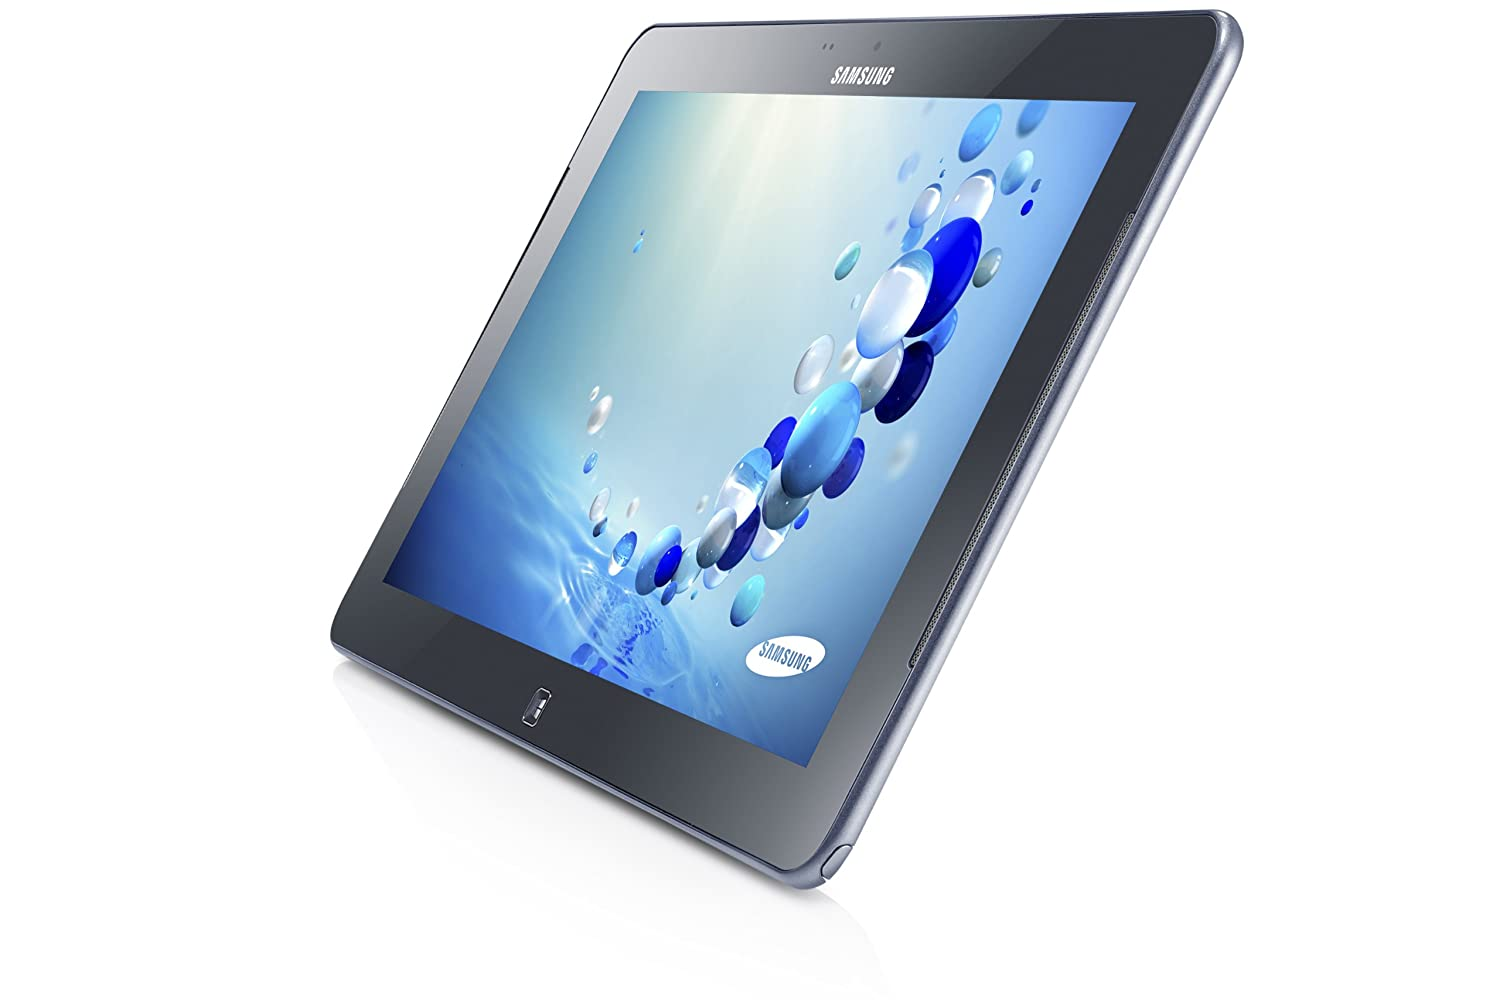 Amazon.com: Samsung ATIV Smart PC 500T (Tablet Only): Computers & Accessories